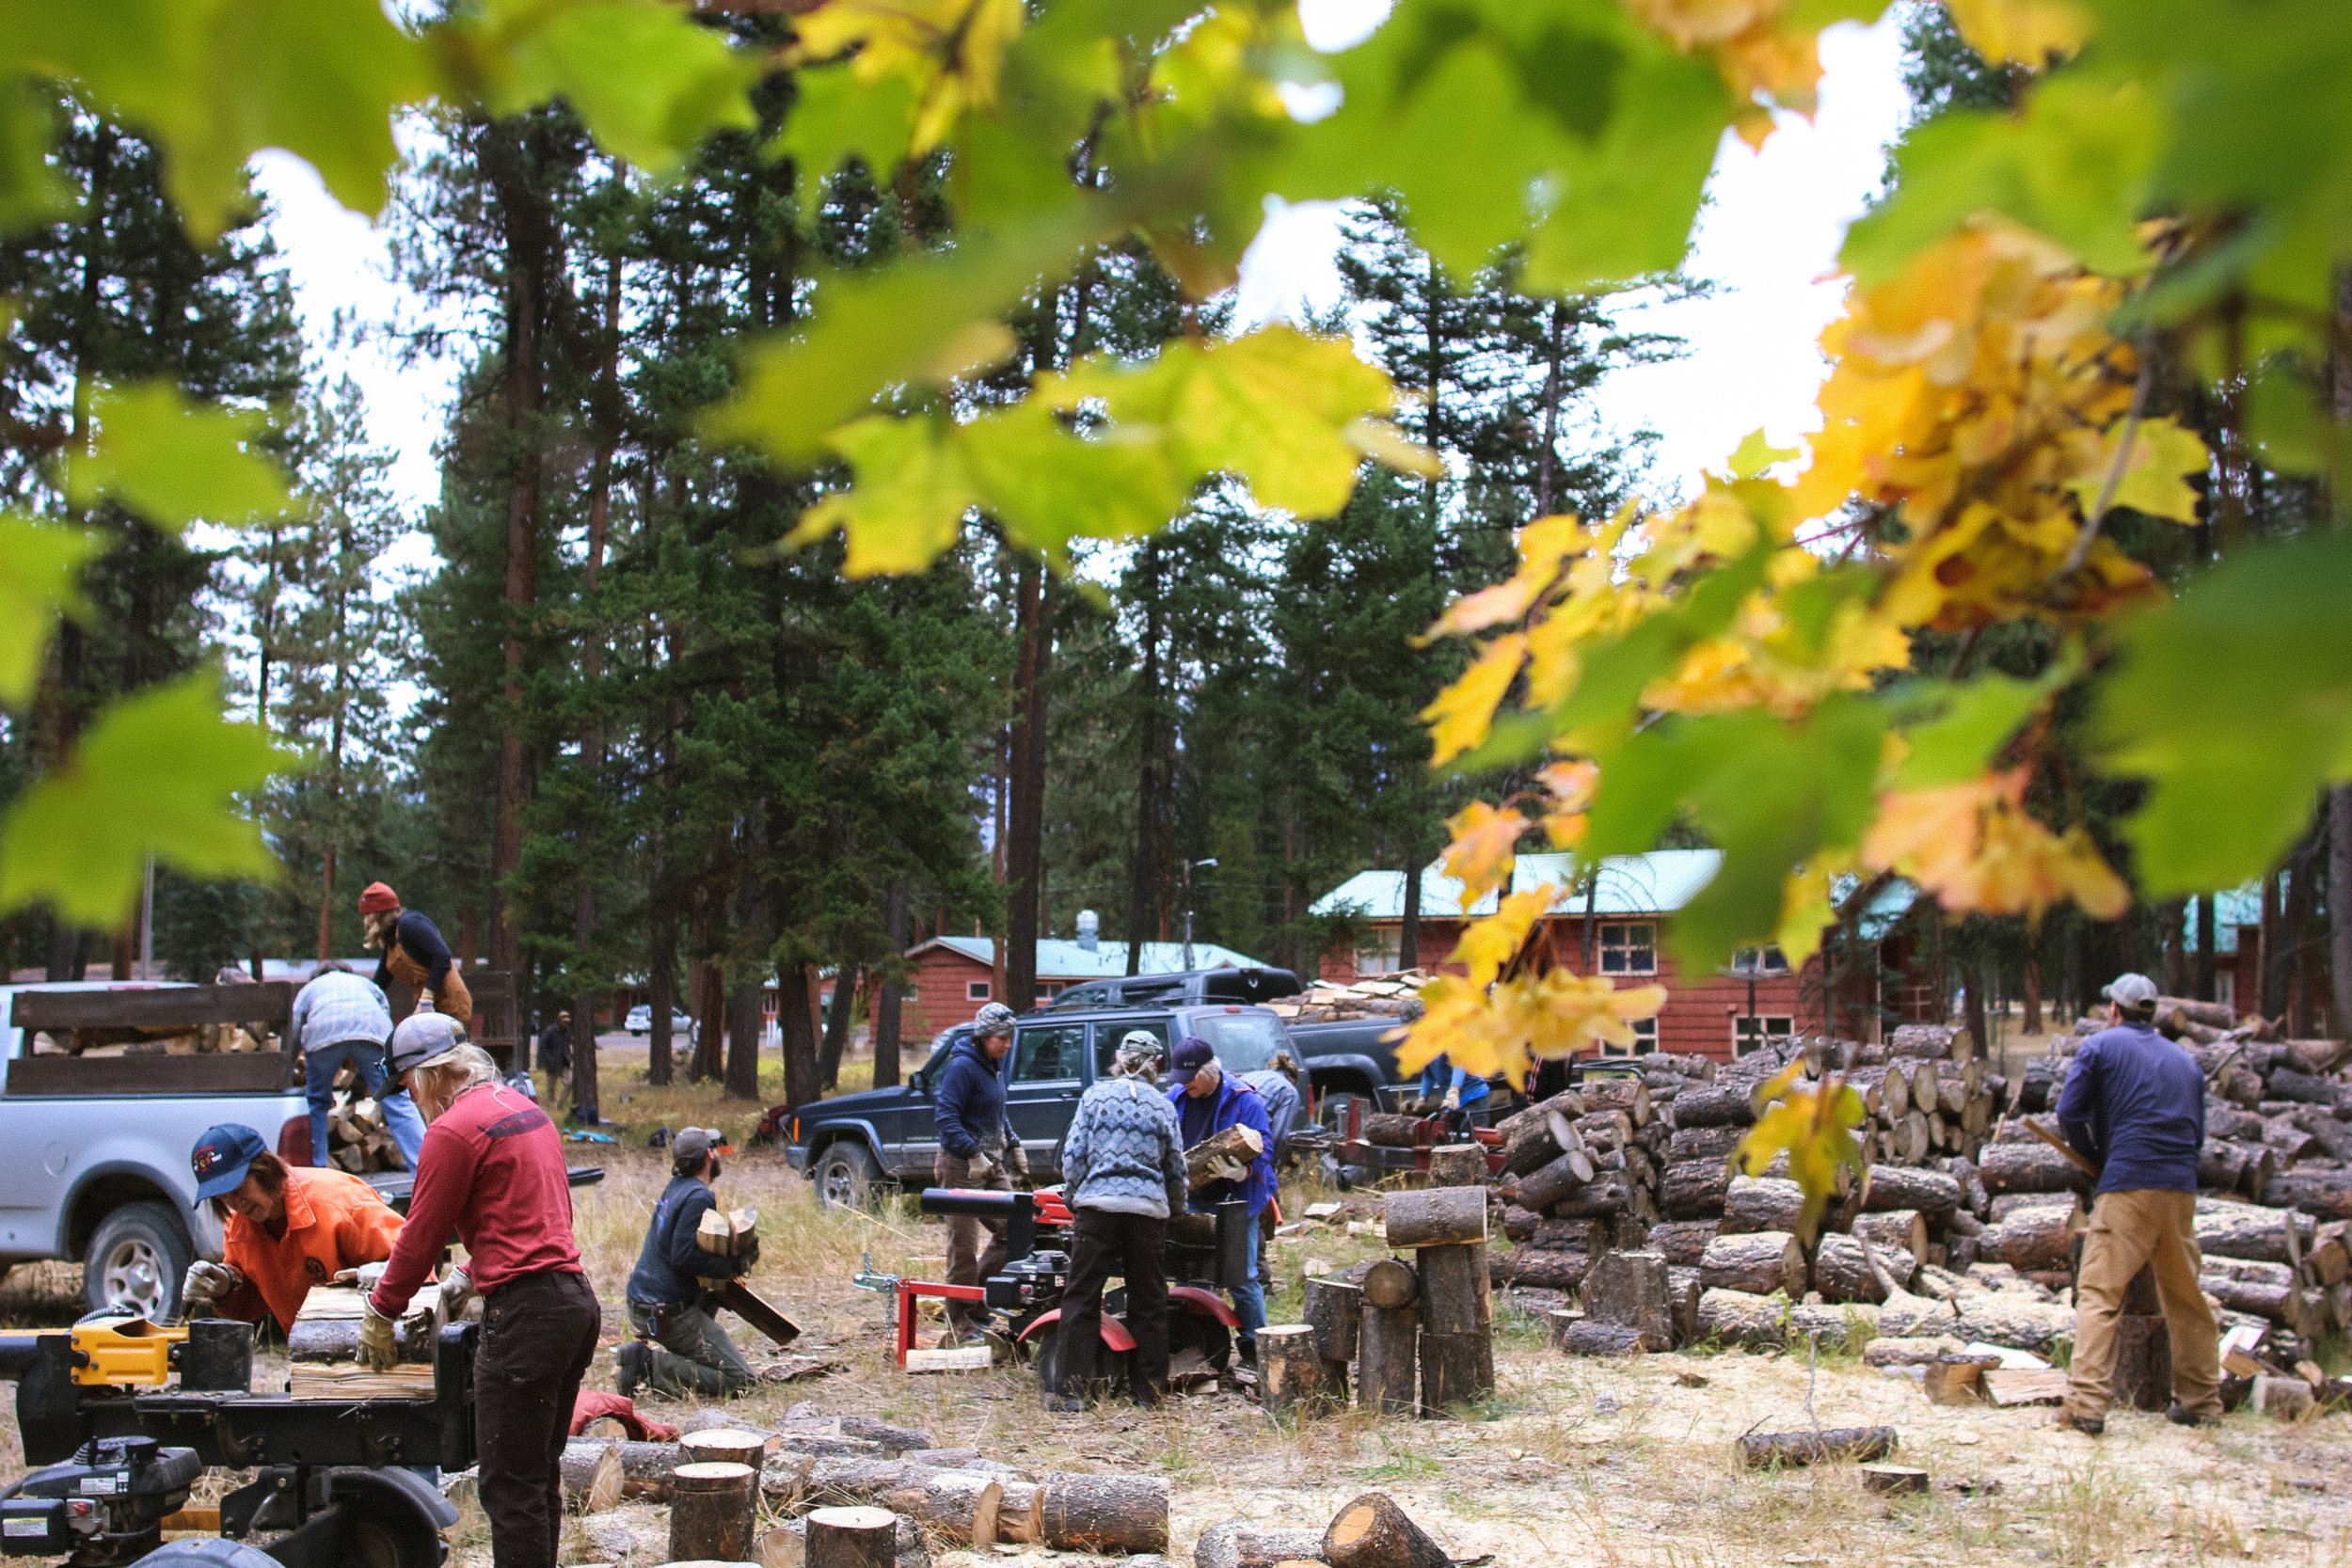 L&L students, SVC staff and community members coming together to chop, split & haul firewood. Photo by Andrea DiNino